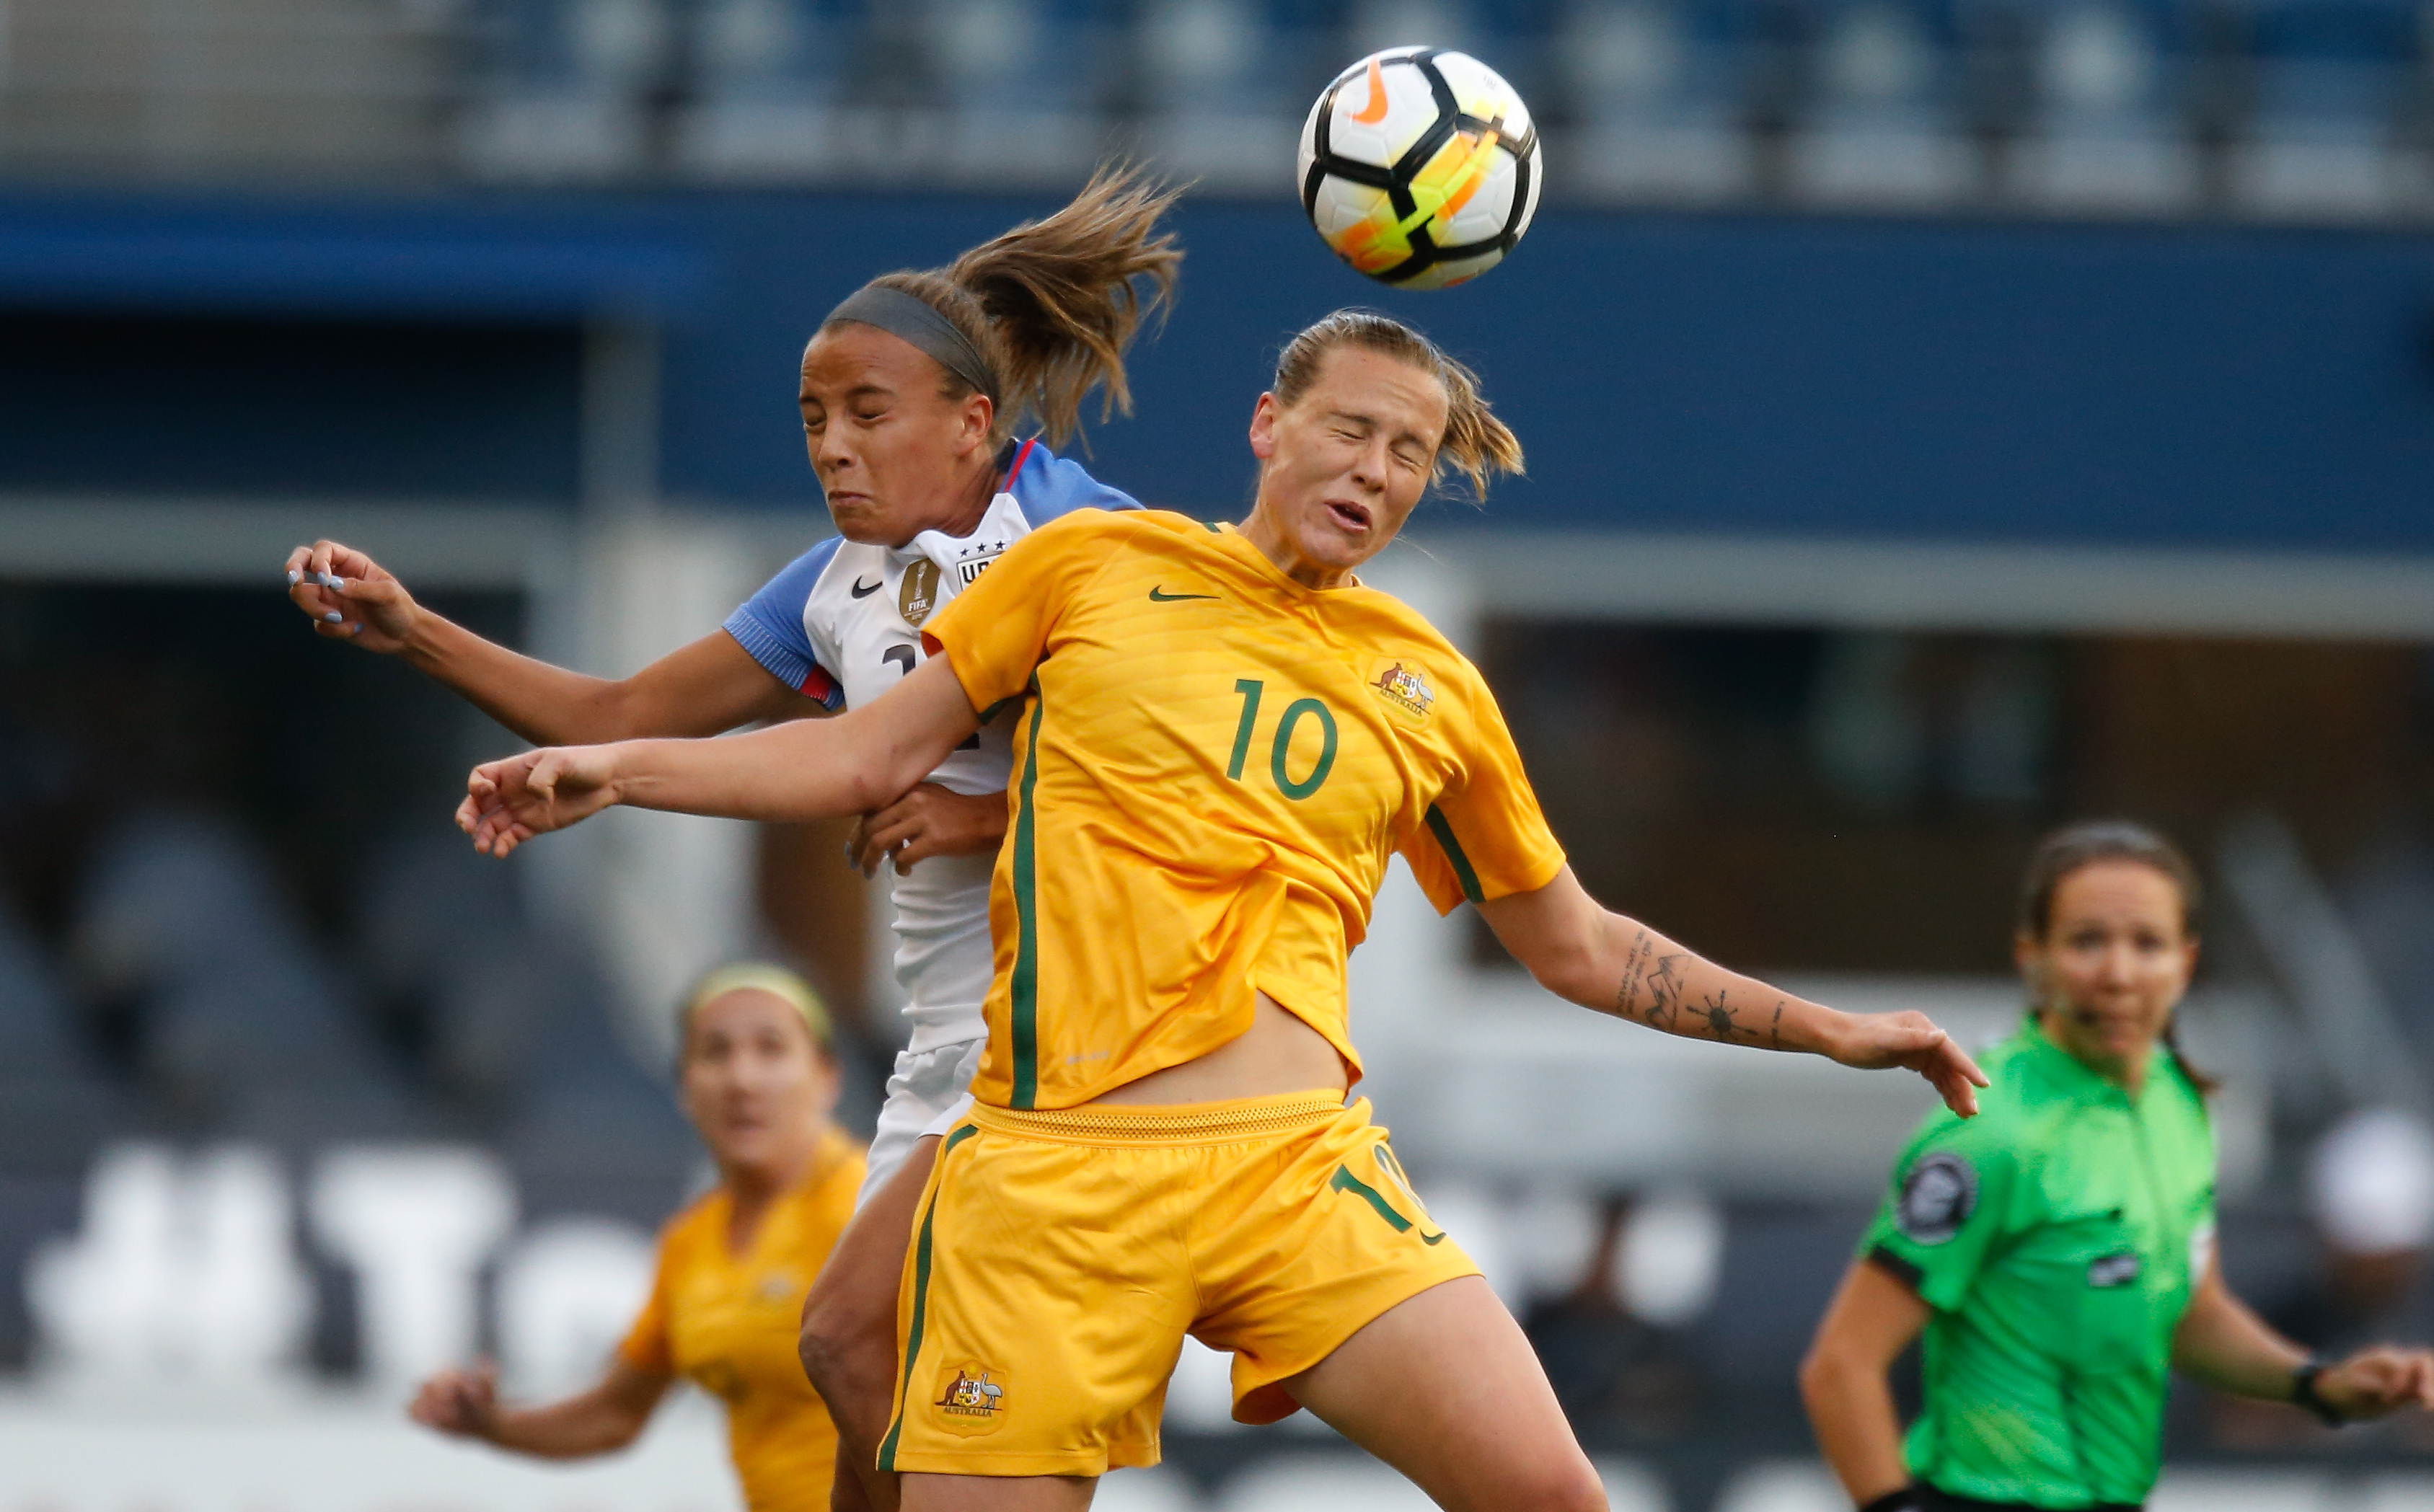 U.S. women look to regroup after falling to Australia at CenturyLink